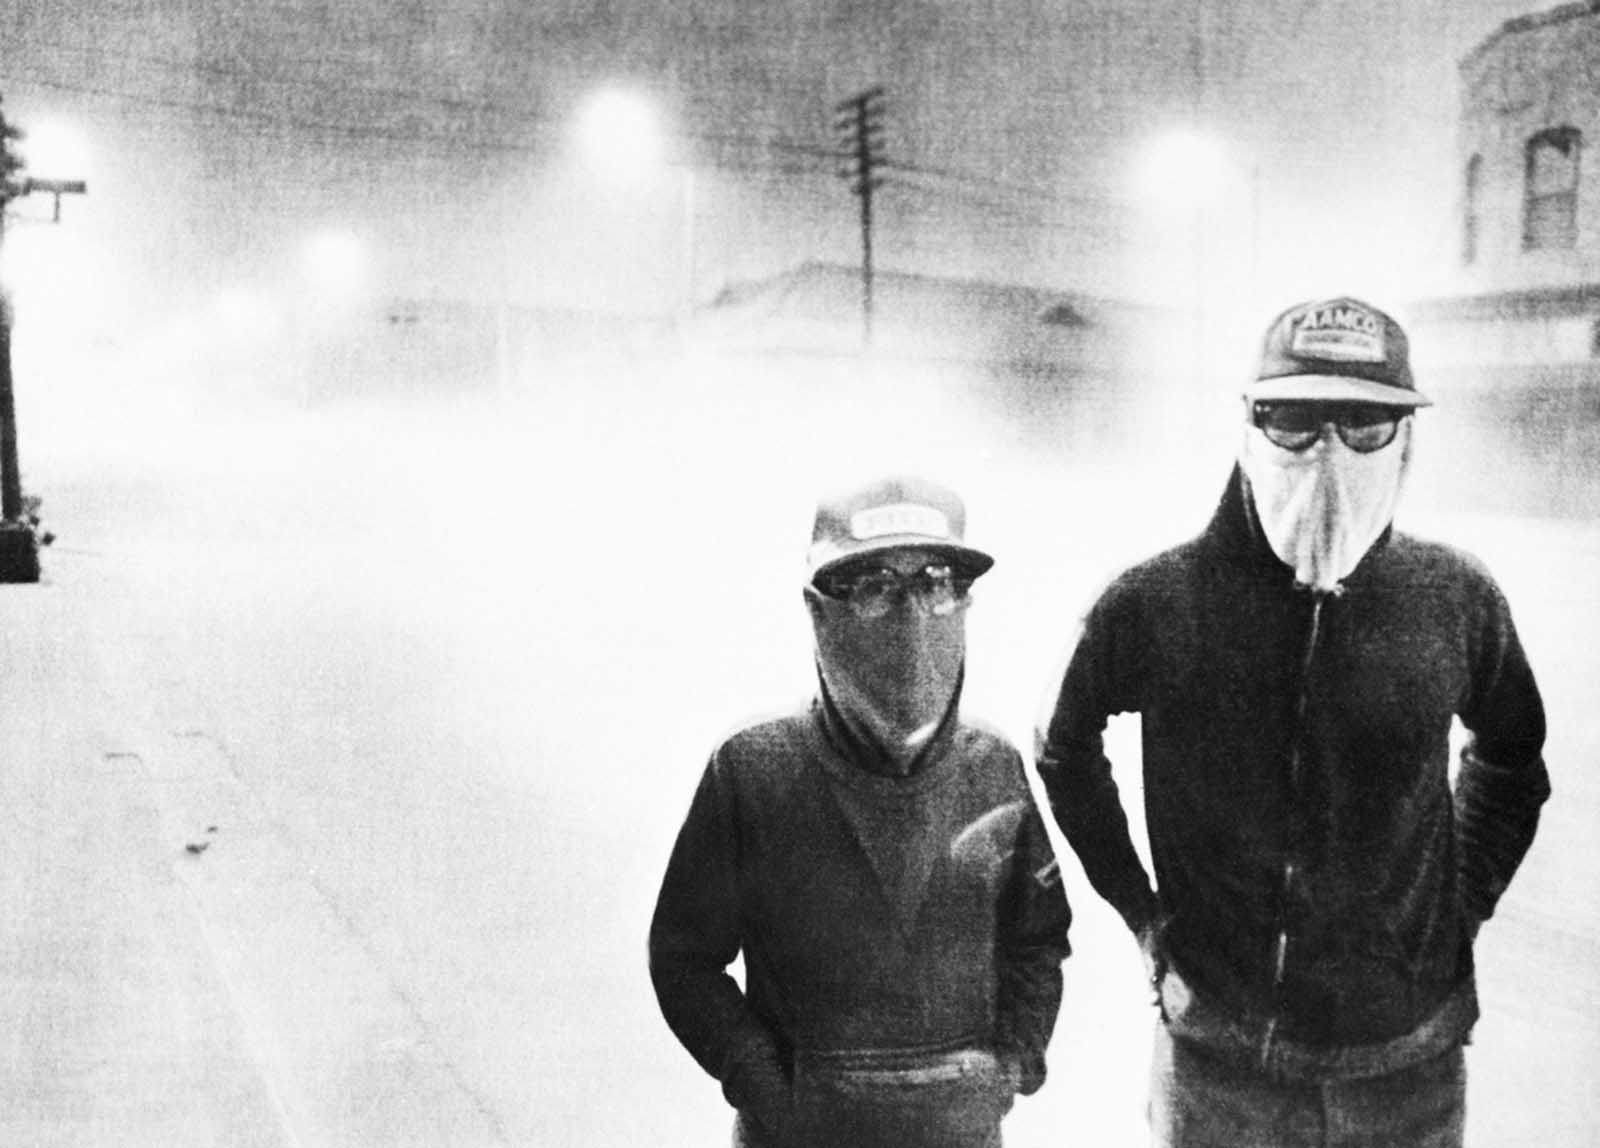 The streets of Yakima, Washington, are dark at 3:00 p.m. after an eruption of Mount St. Helens on May 18, 1980. Volcanic ash covered the streets as people wore masks to avoid breathing the particles.